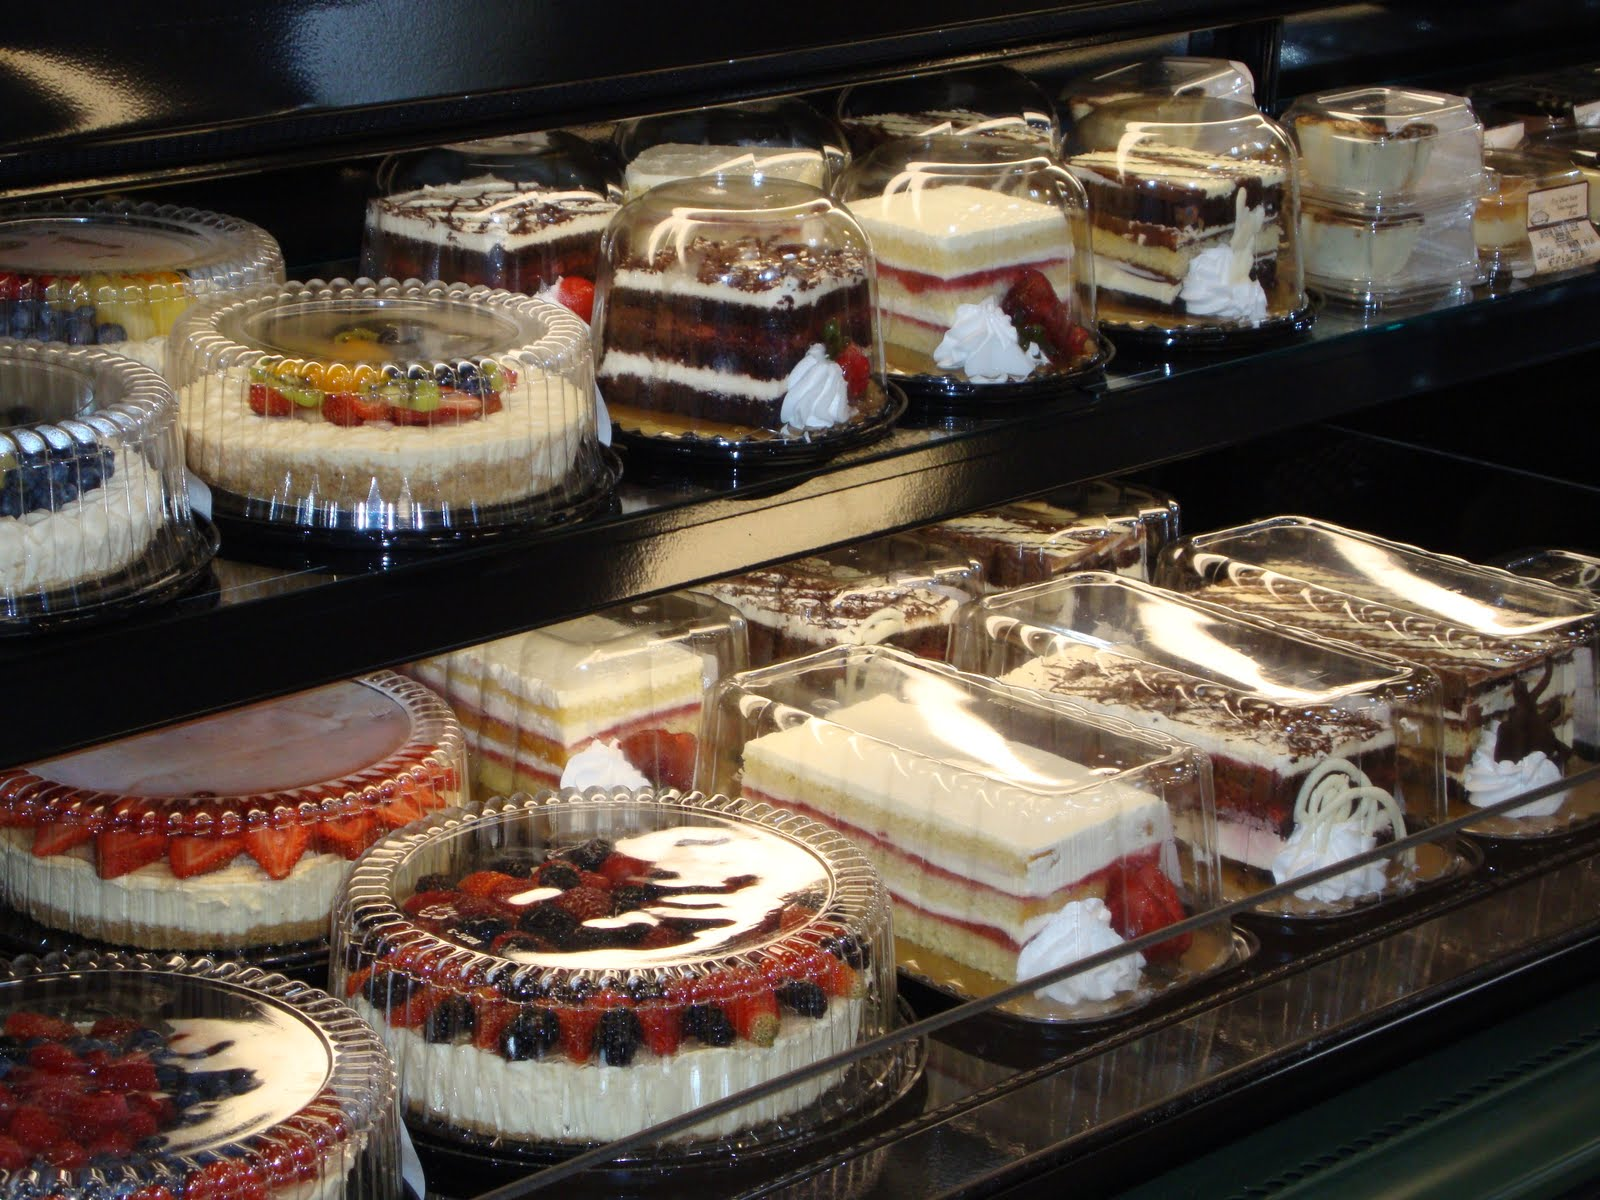 Kroger Cakes http://joycelansky.blogspot.com/2011/06/wordless-wednesday-cake-in-rain.html